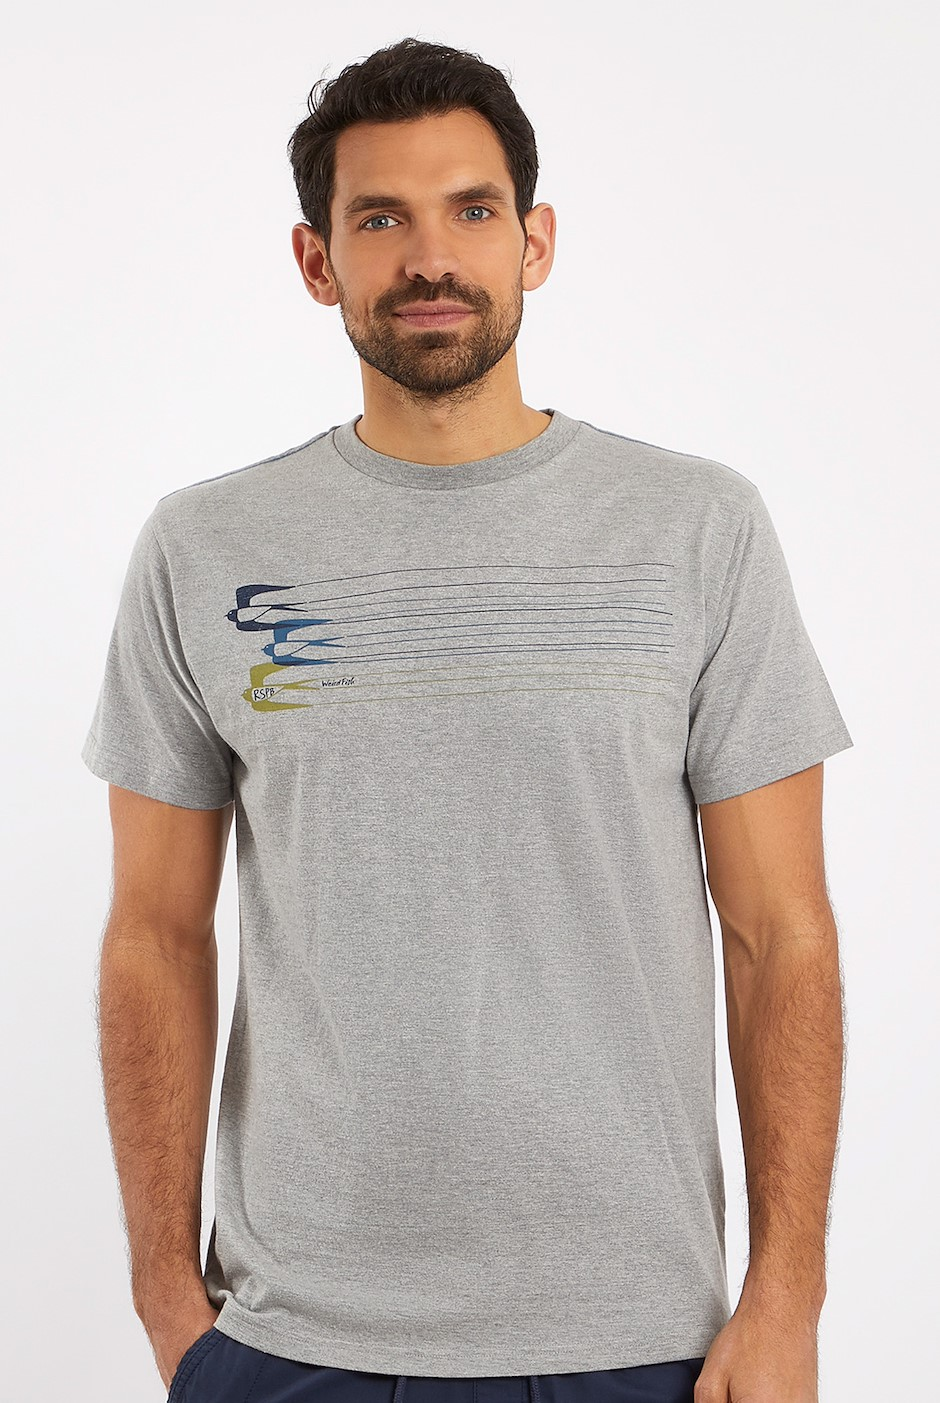 Swallows RSPB Graphic T-Shirt Grey Marl